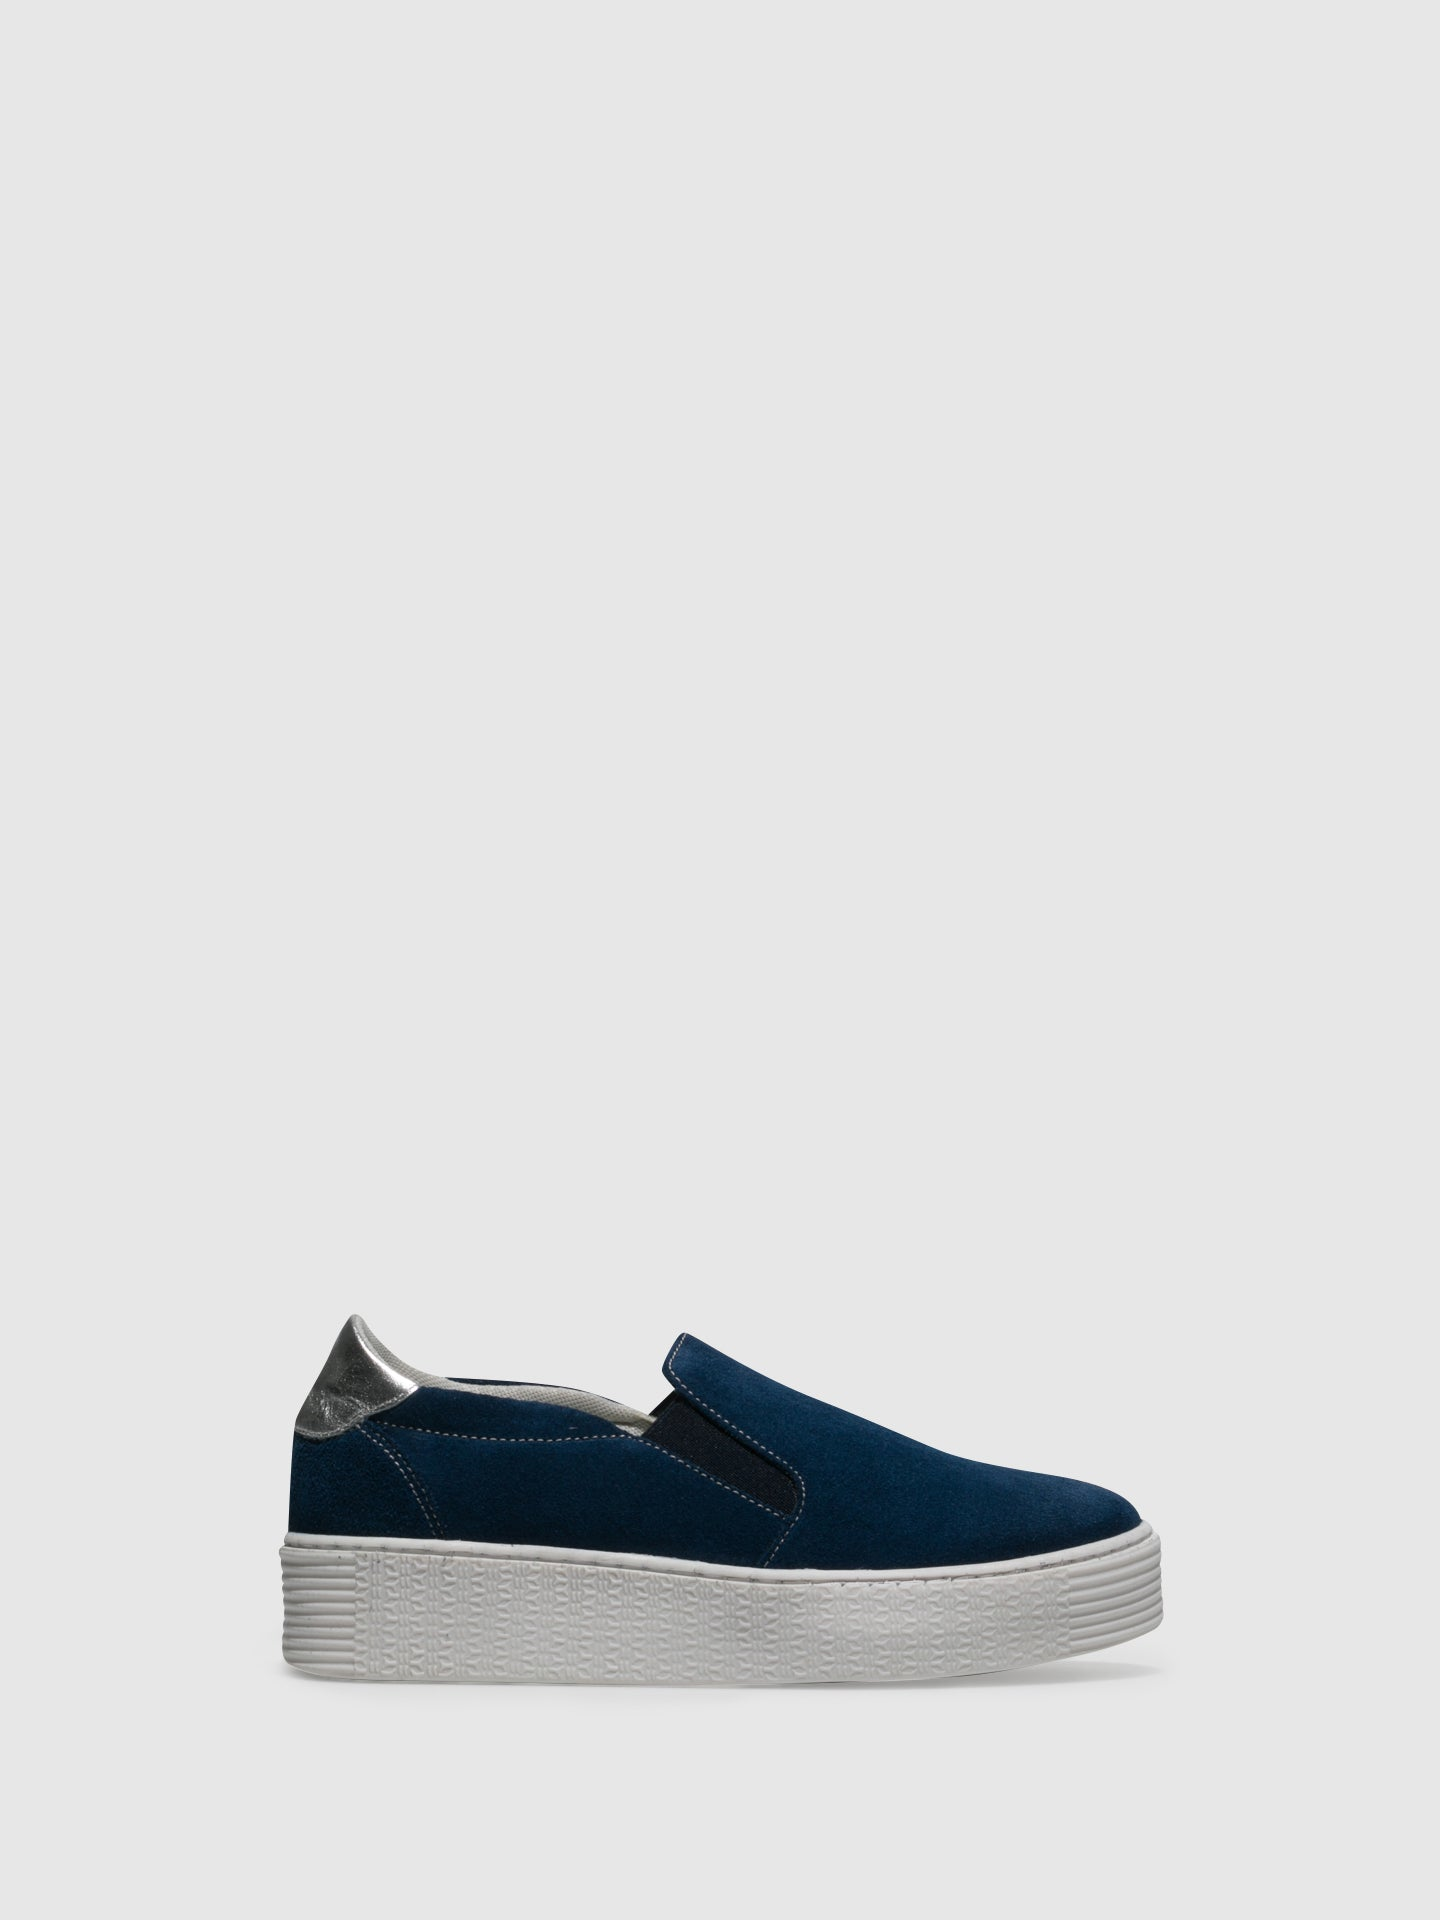 Bos&Co Blue Slip-on Trainers